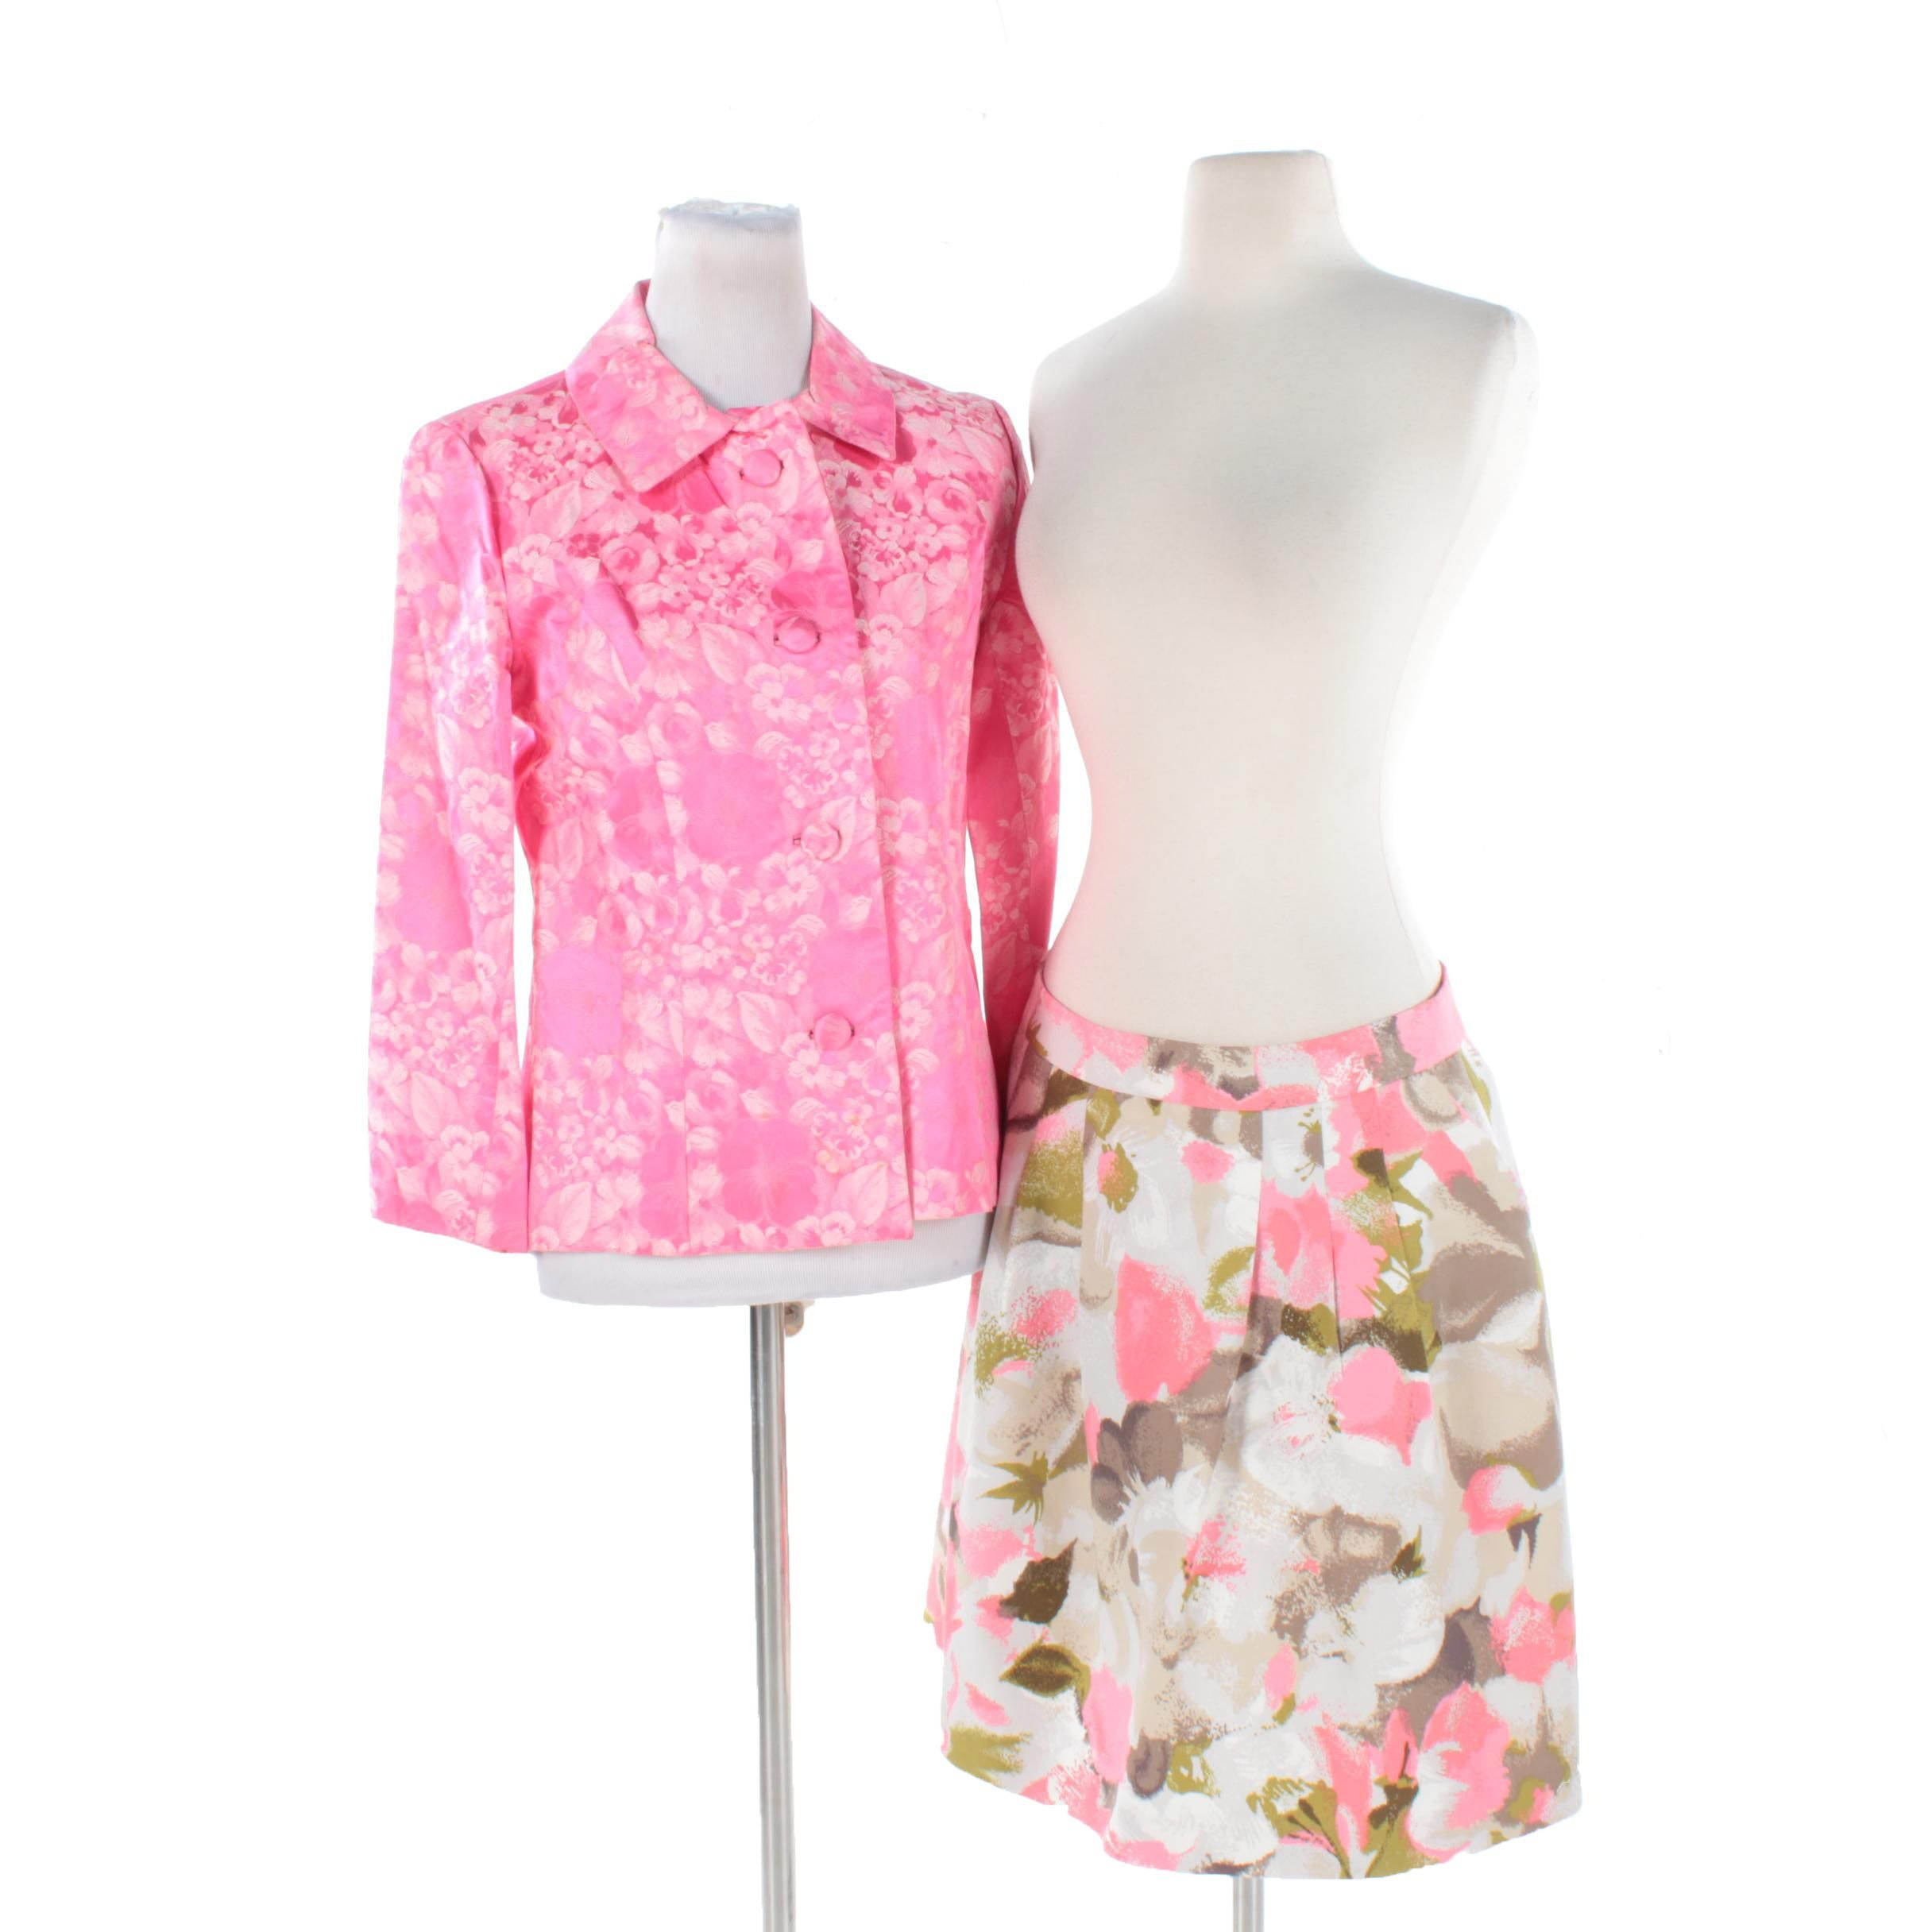 Women's Floral Blazer and Skirt